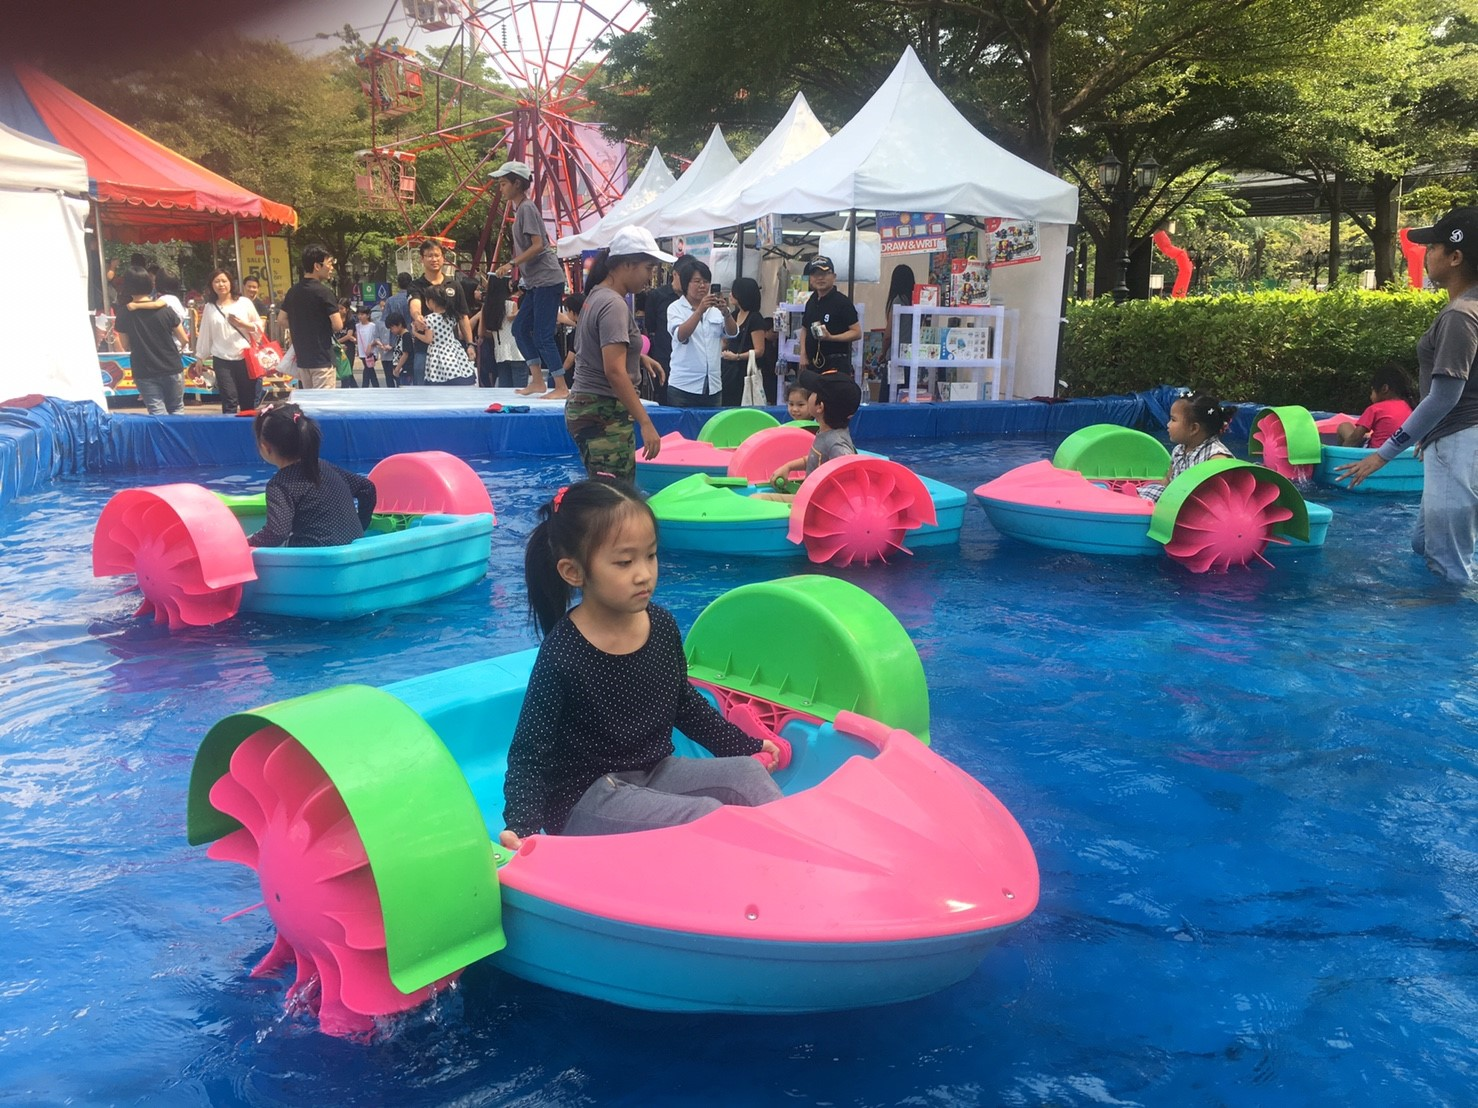 5. The Crystal Kids Carnival